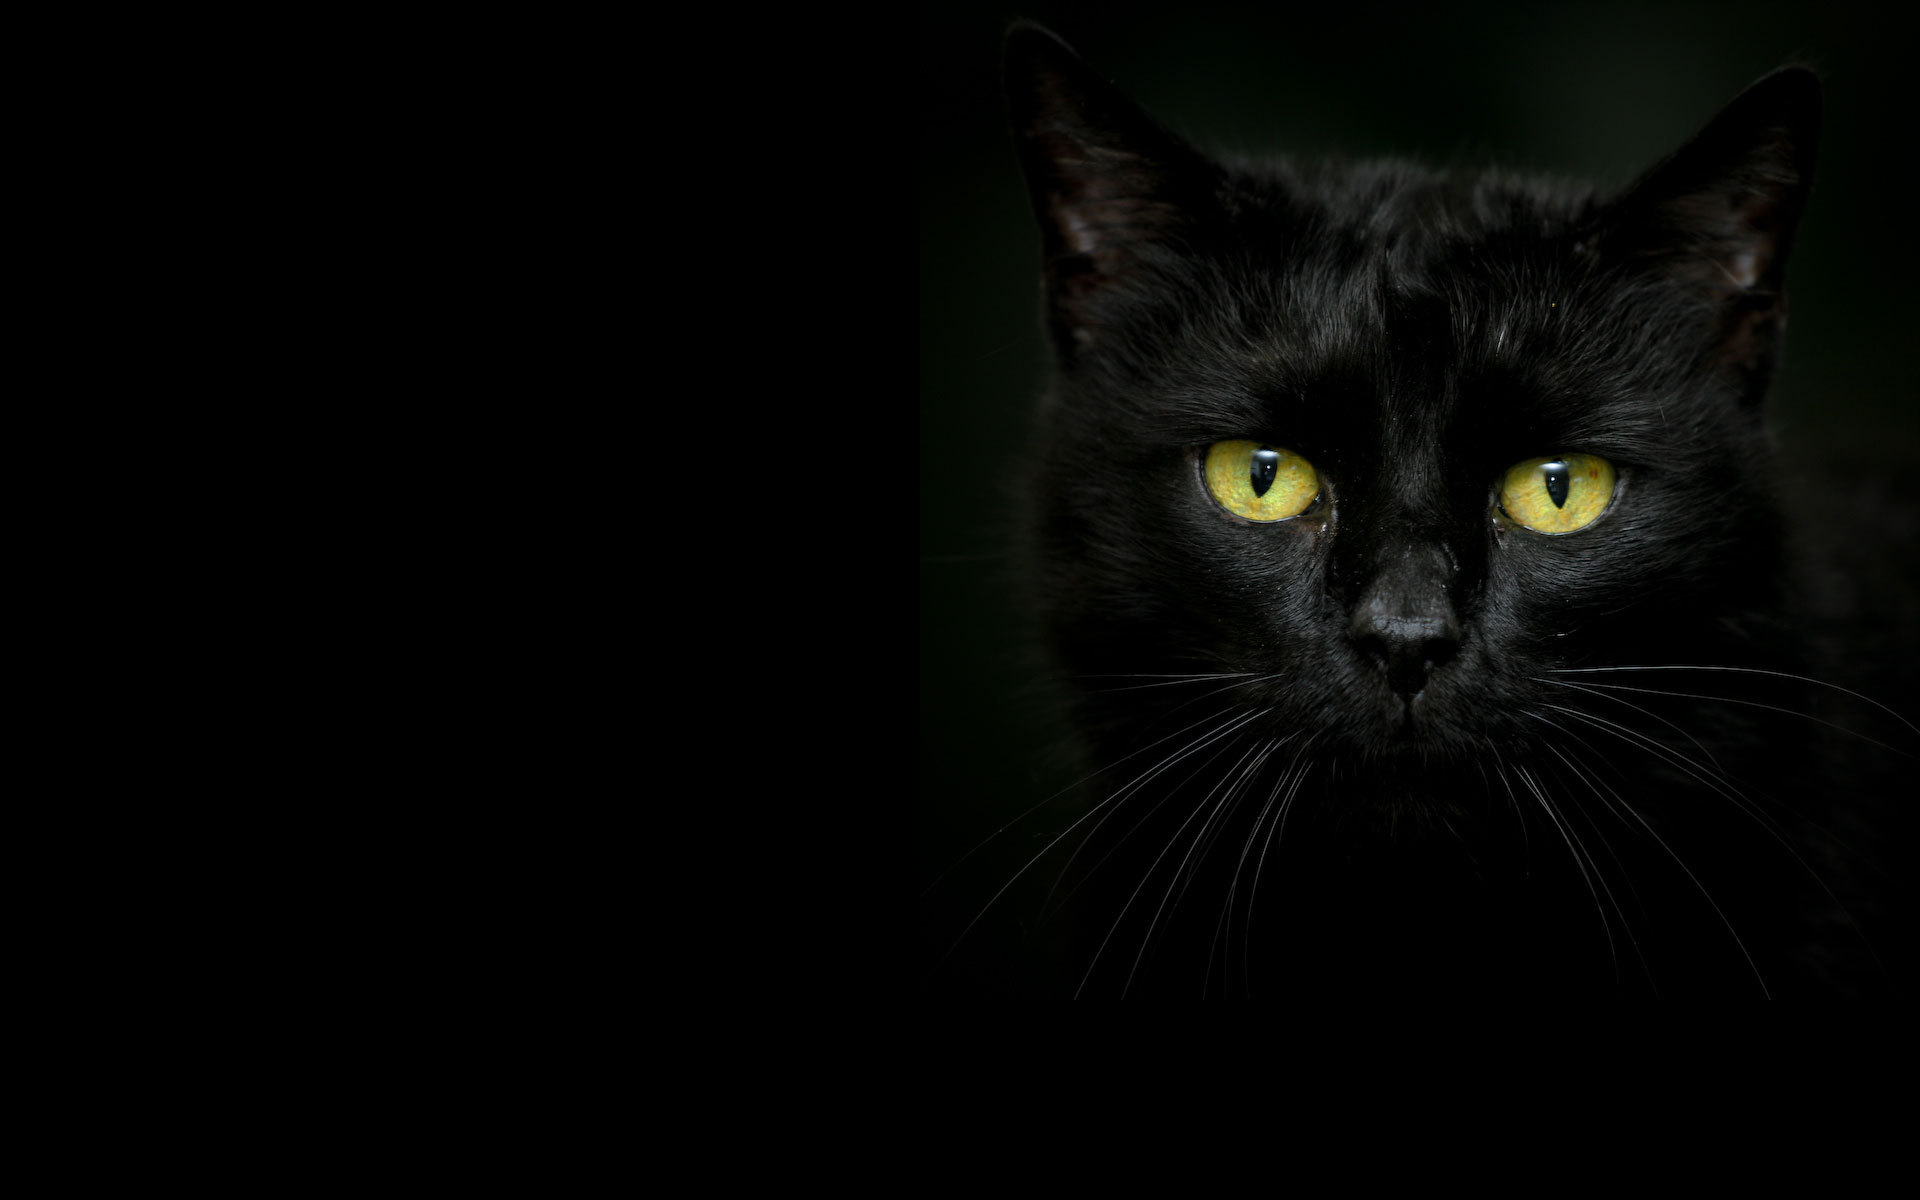 Beautiful black cat on a dark background wallpapers and images 1920x1200